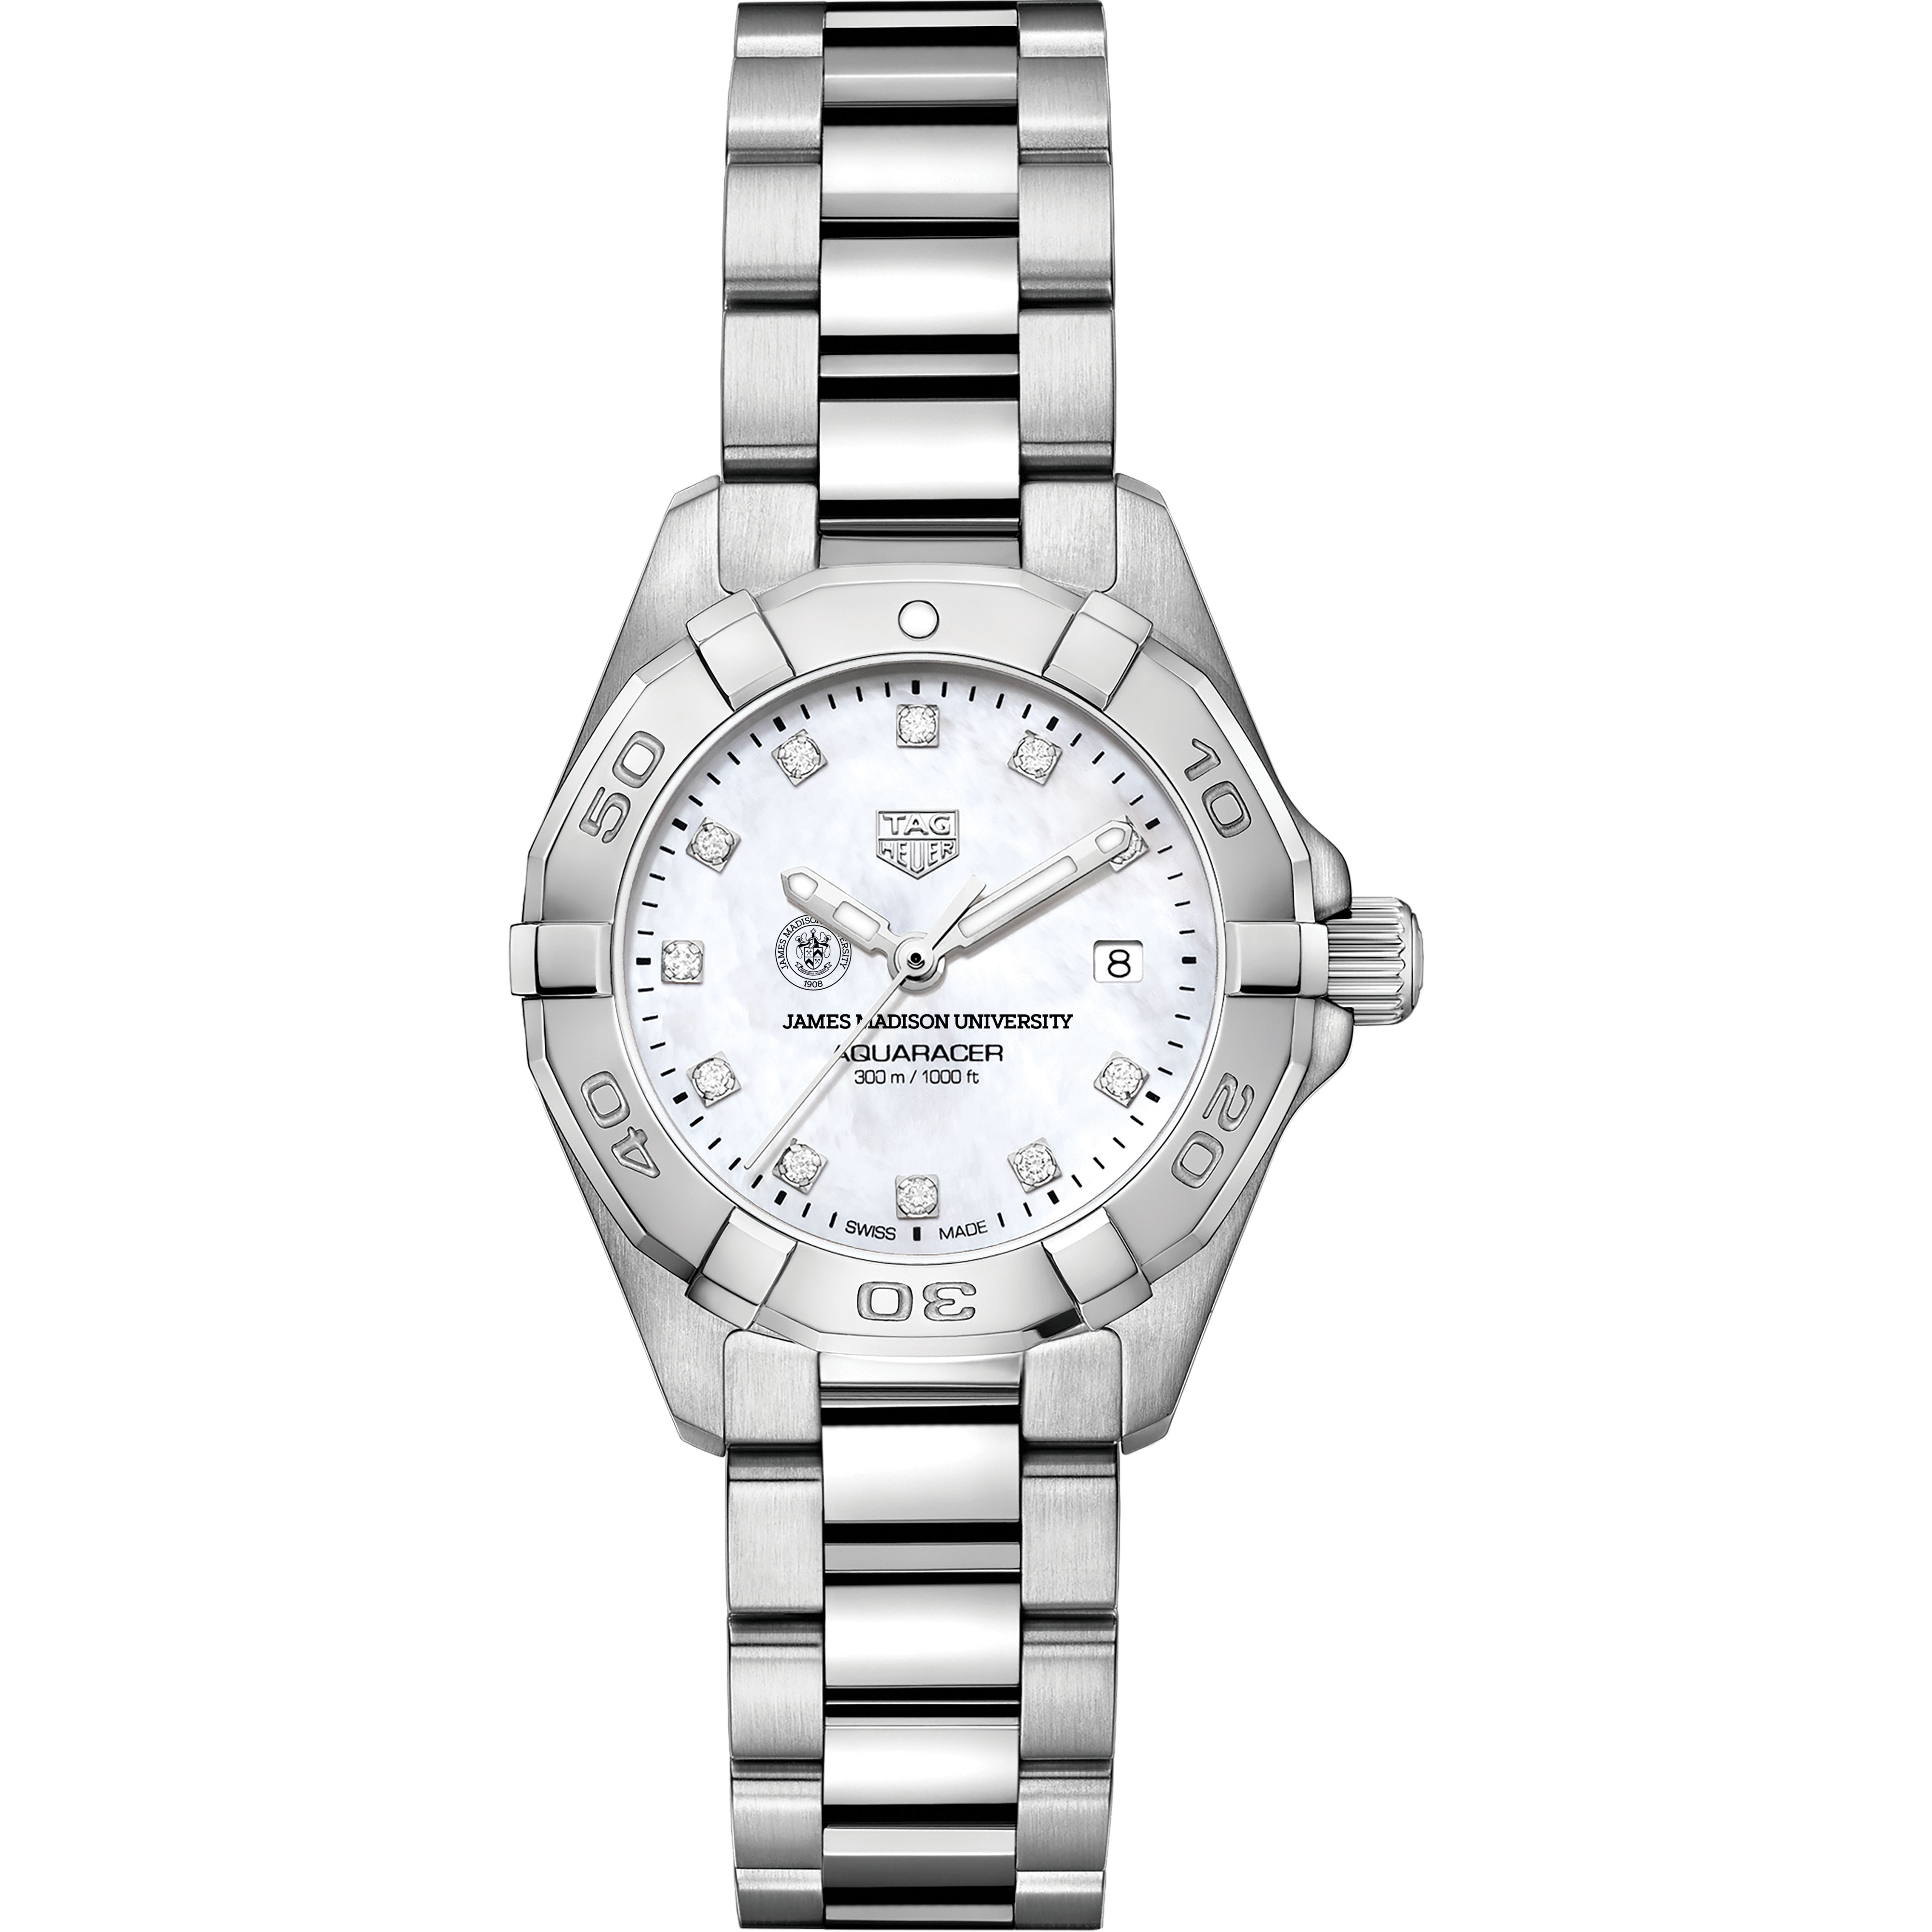 James Madison W's TAG Heuer Steel Aquaracer w MOP Dia Dial - Image 2